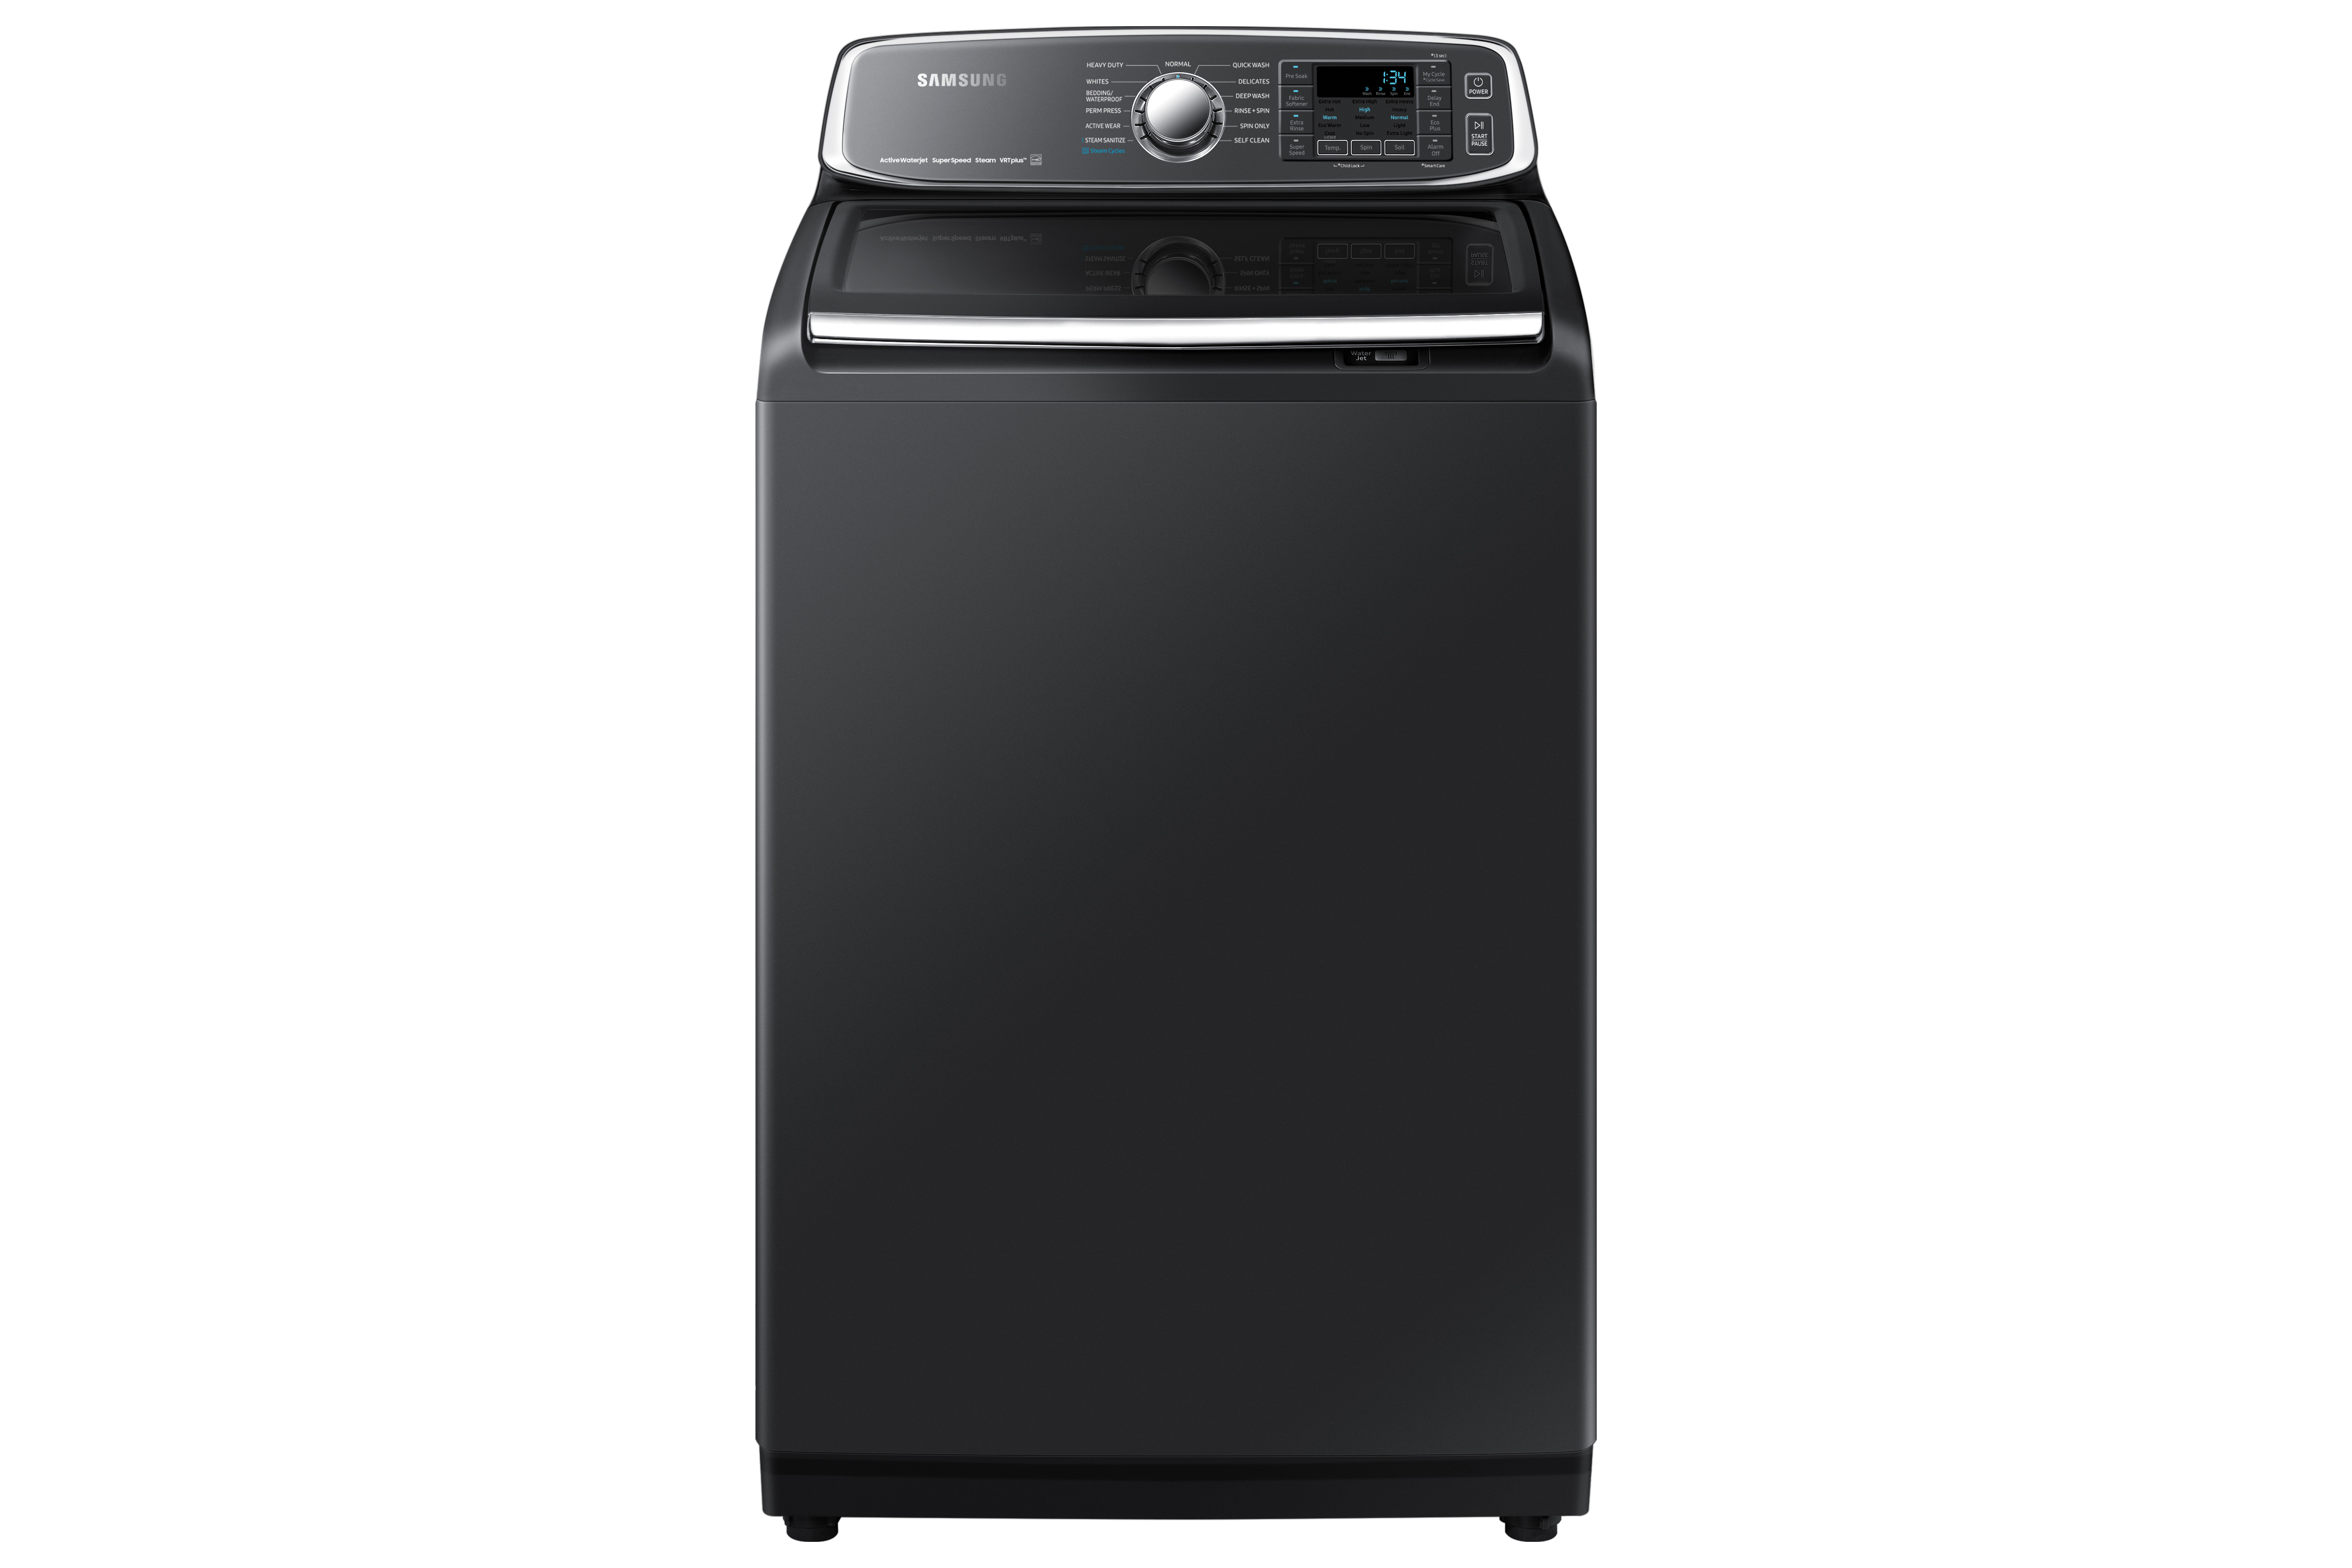 Samsung Washer in Black color showcased by Corbeil Electro Store